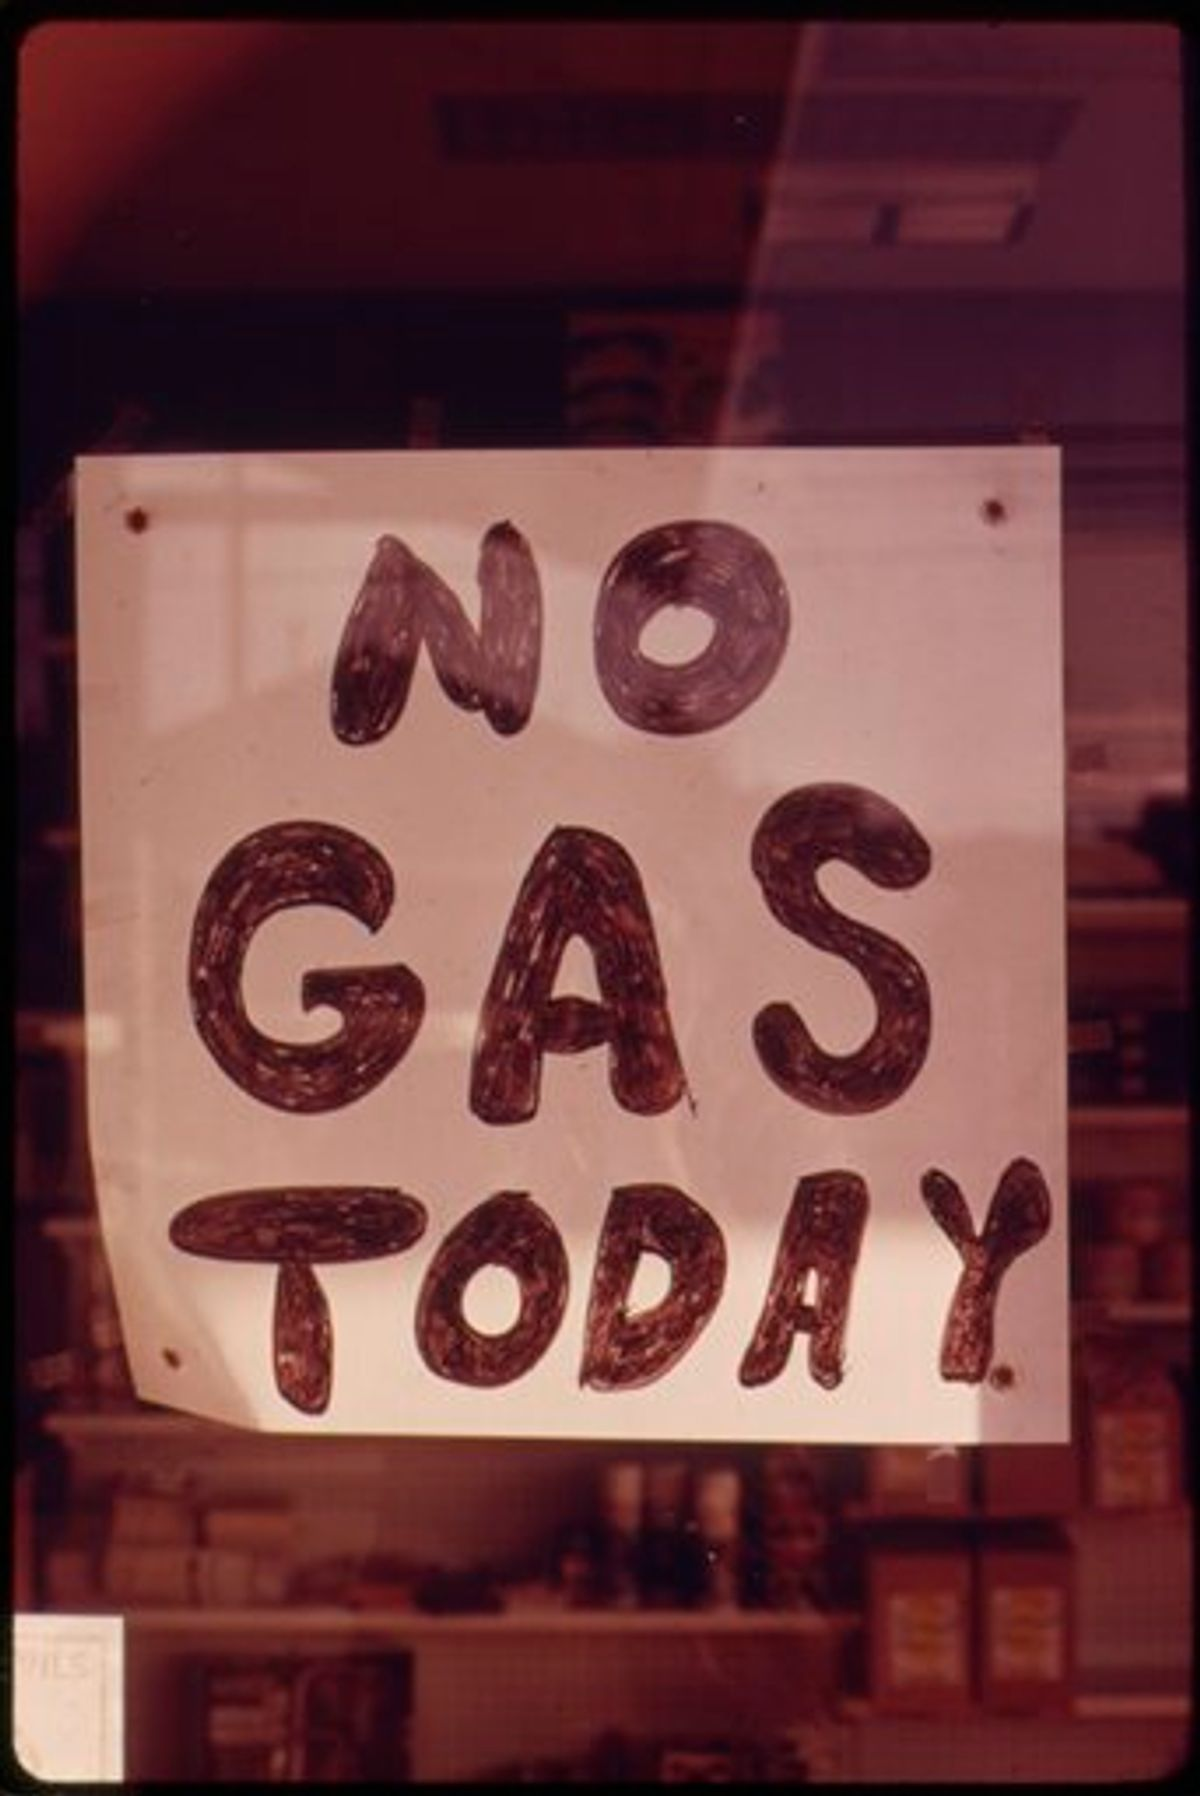 In this Oct. 1973 photo provided by the U.S. National Archives, a sign hangs in the window of a gas station in Lincoln City, Ore. The photo is part of Documerica, an EPA project during the 1970s in which the agency hired dozens of freelance photographers to capture thousands of images related to the environment and everyday life in America. Modeled after Documerica, the agency has embarked on a massive effort to collect photographs from across the United States and around the world over the next year that depict everything from nature's beauty to humanity's impact, both good and bad. (AP Photo/U.S. National Archives, David Falconer) (AP)